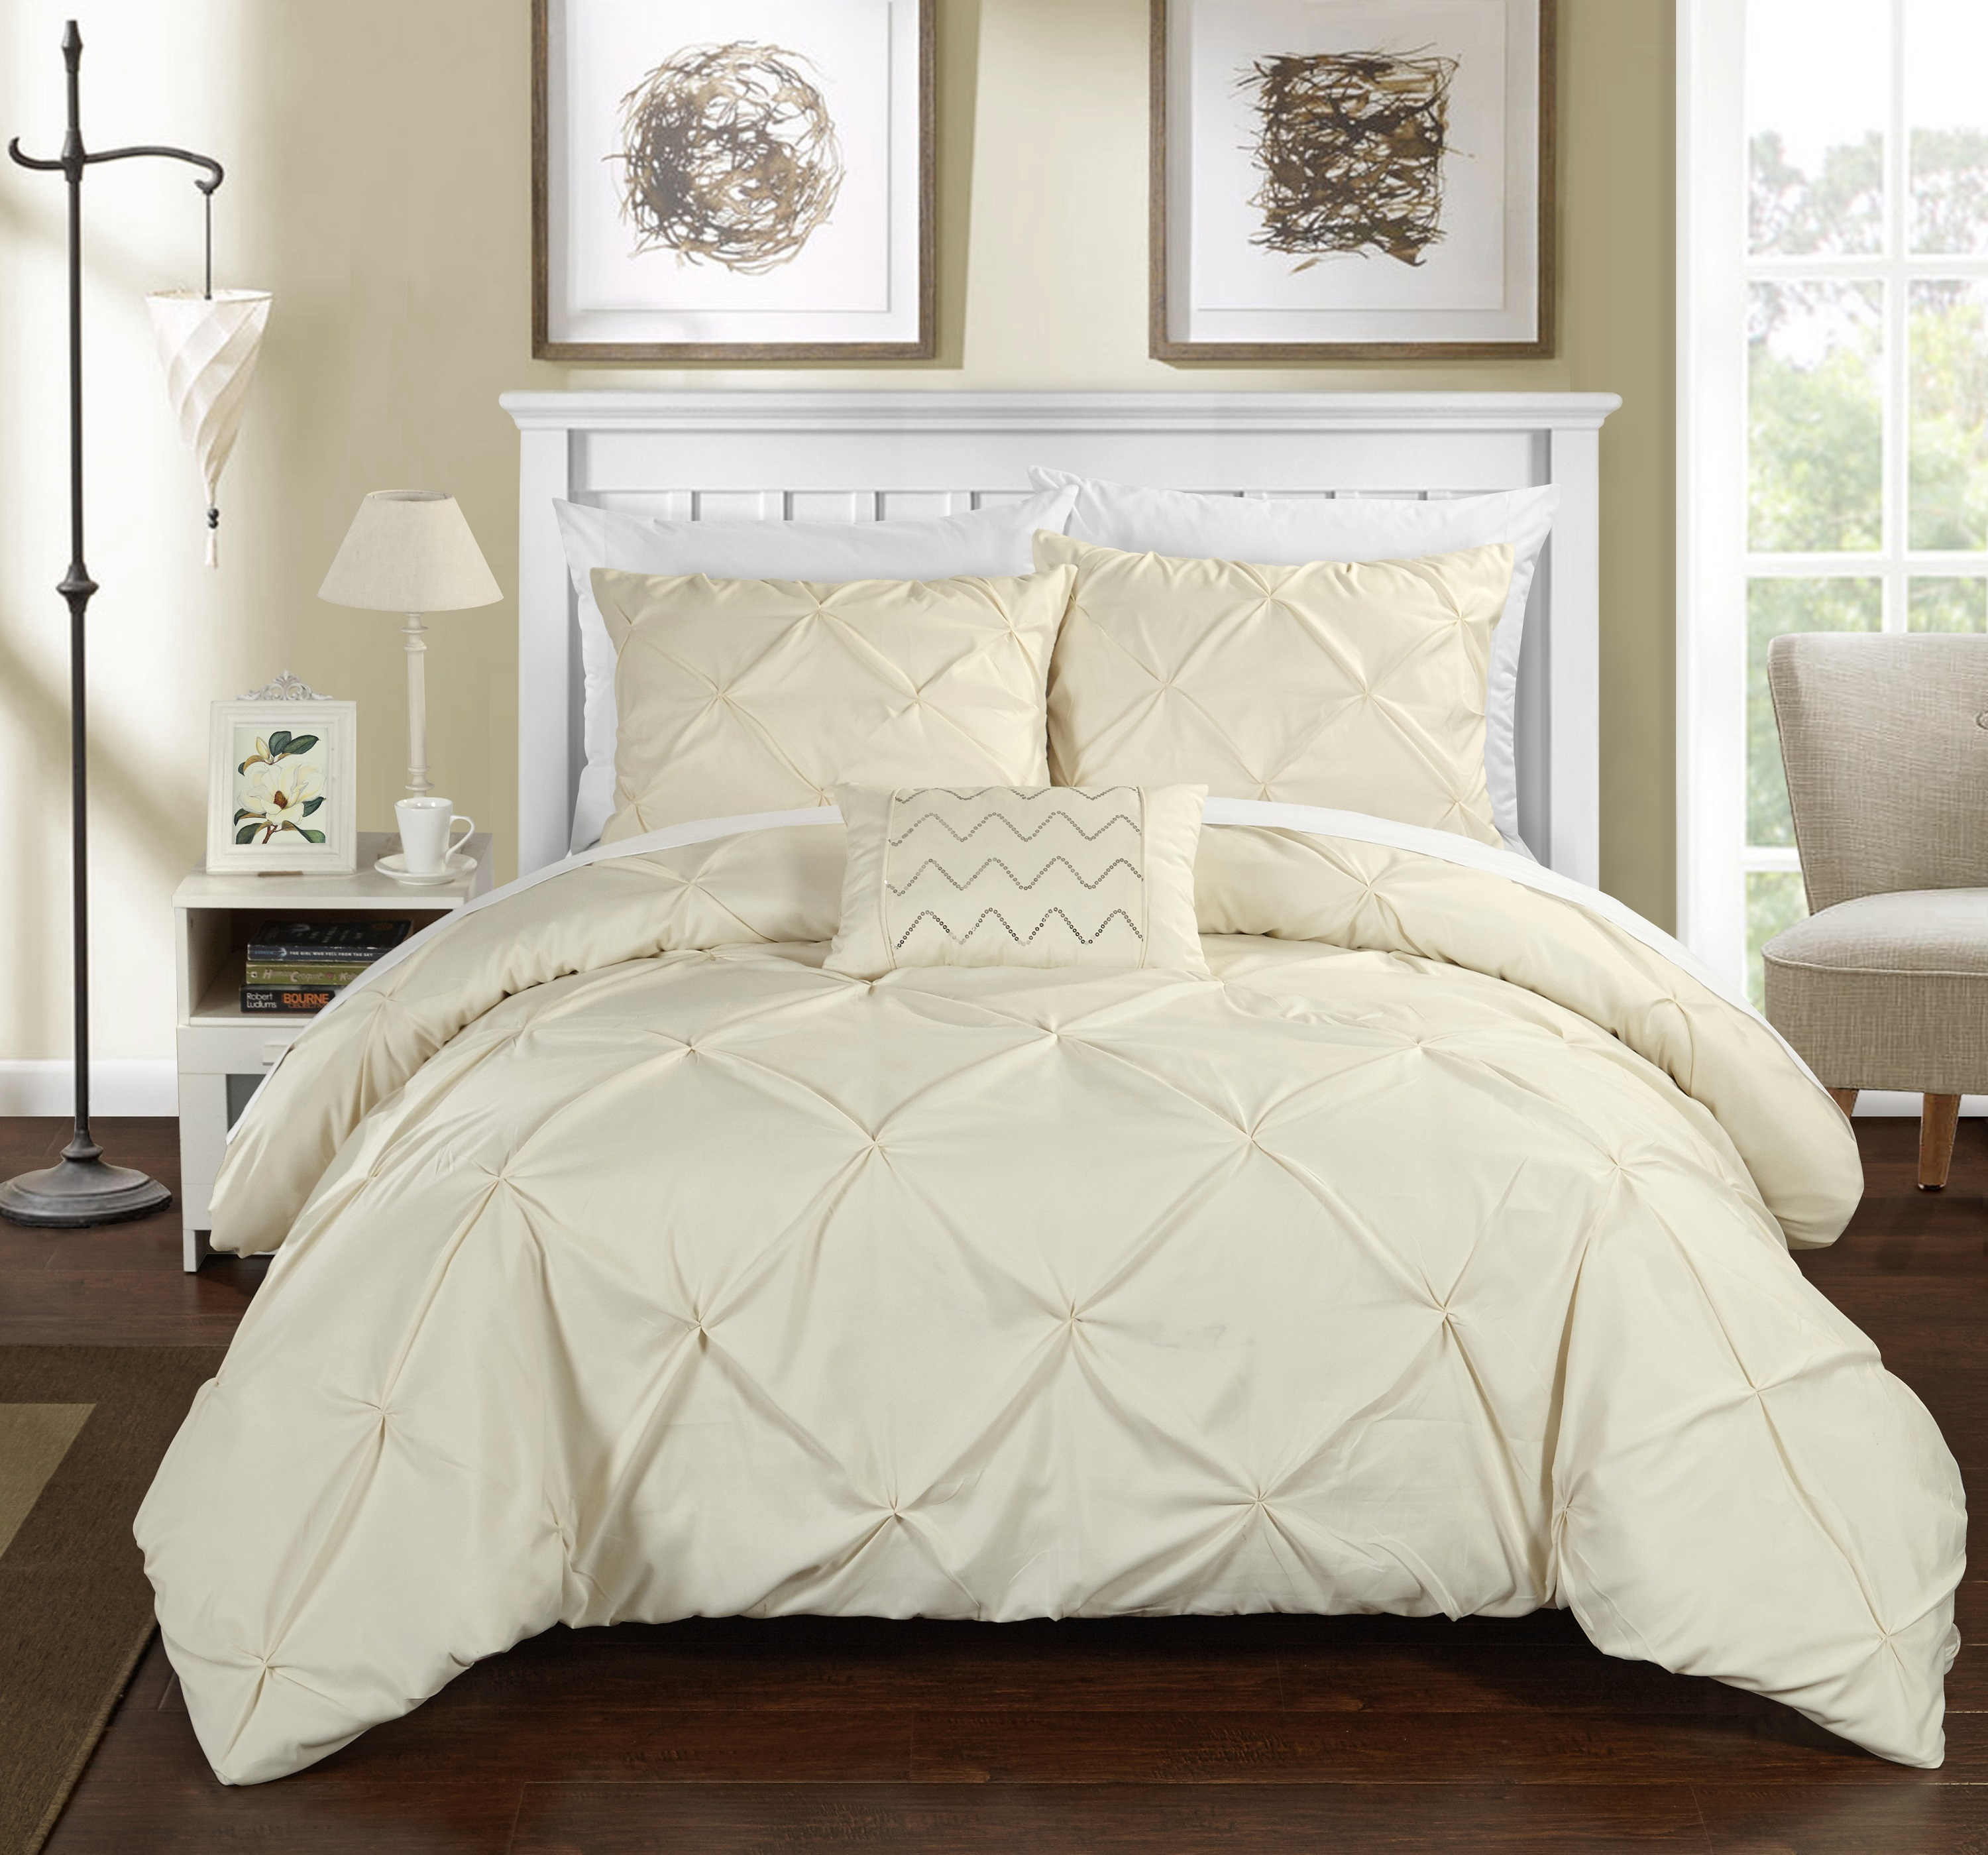 Chic Home 8-Piece Whitley Pinch Pleated Bed in a Bag Duvet Set